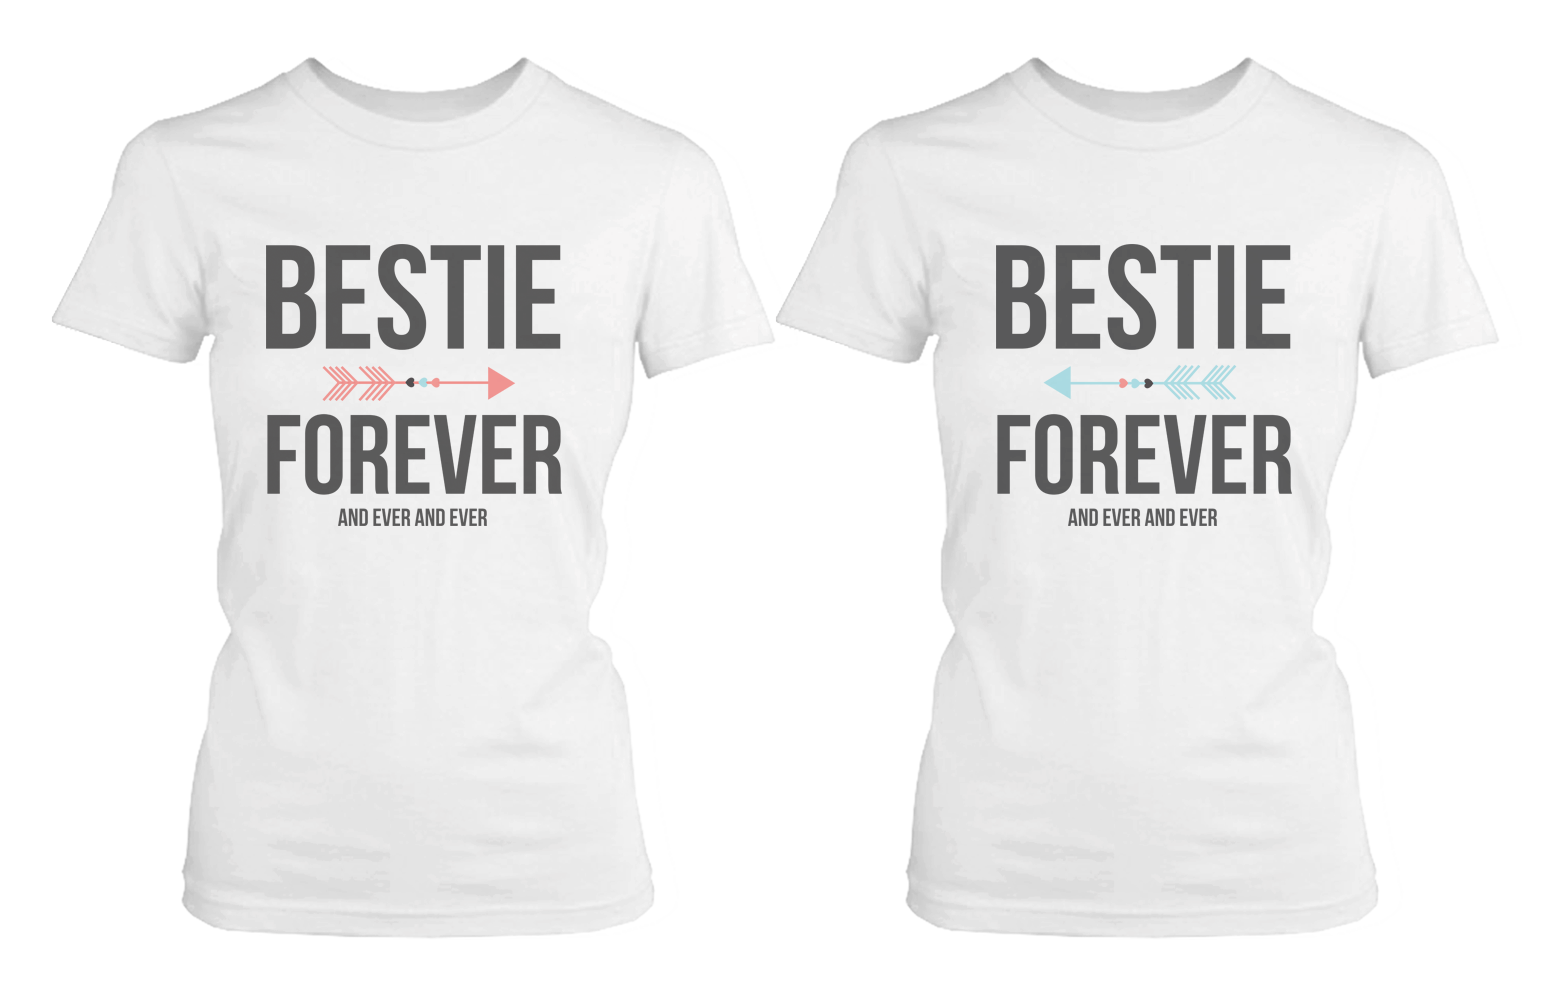 Cute Best Friends Shirt Designs Lera Sweater